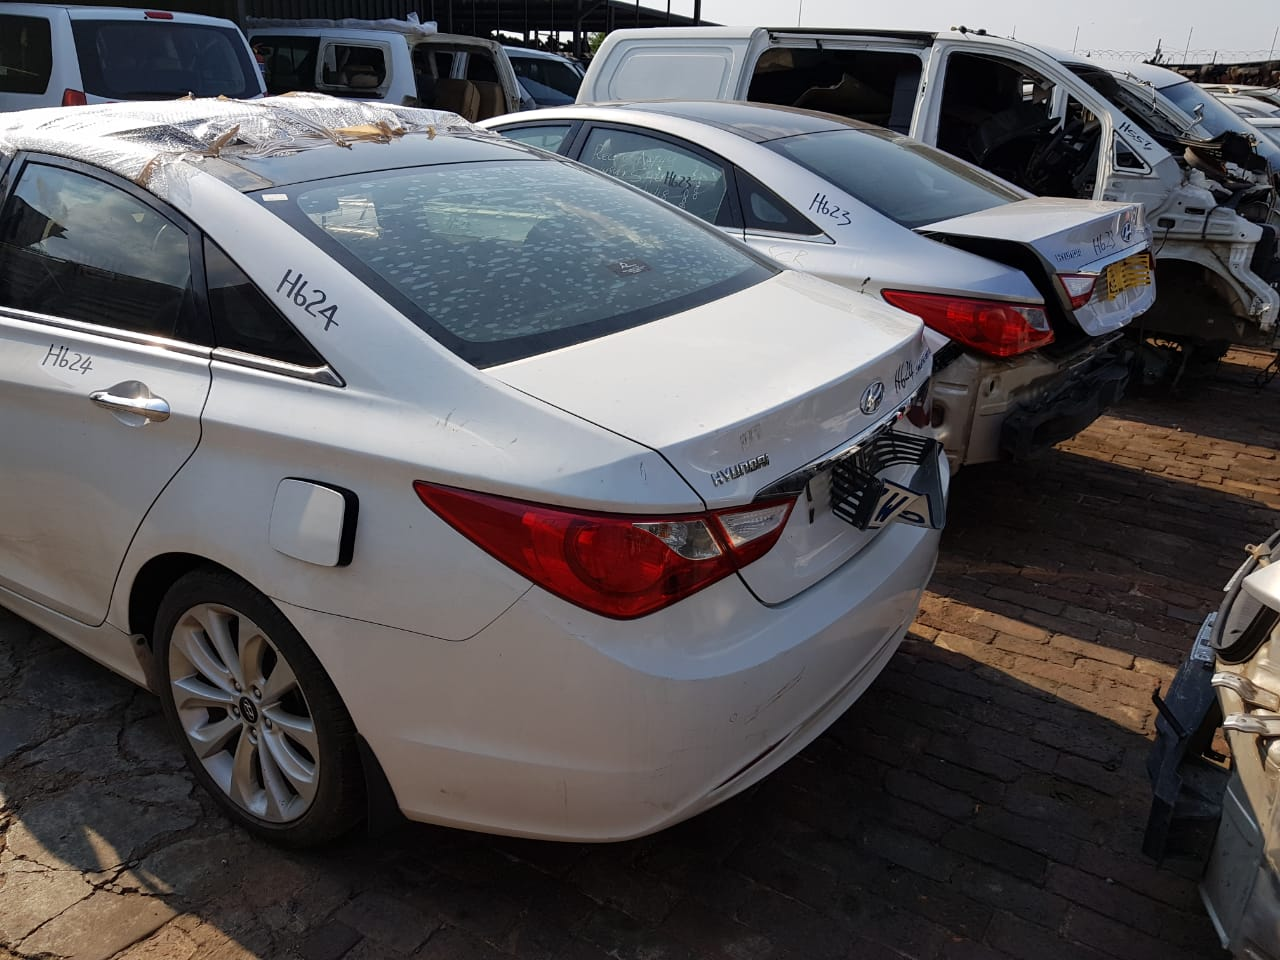 Hyundai Sonata Spares and Parts for Sale at DTB Spares